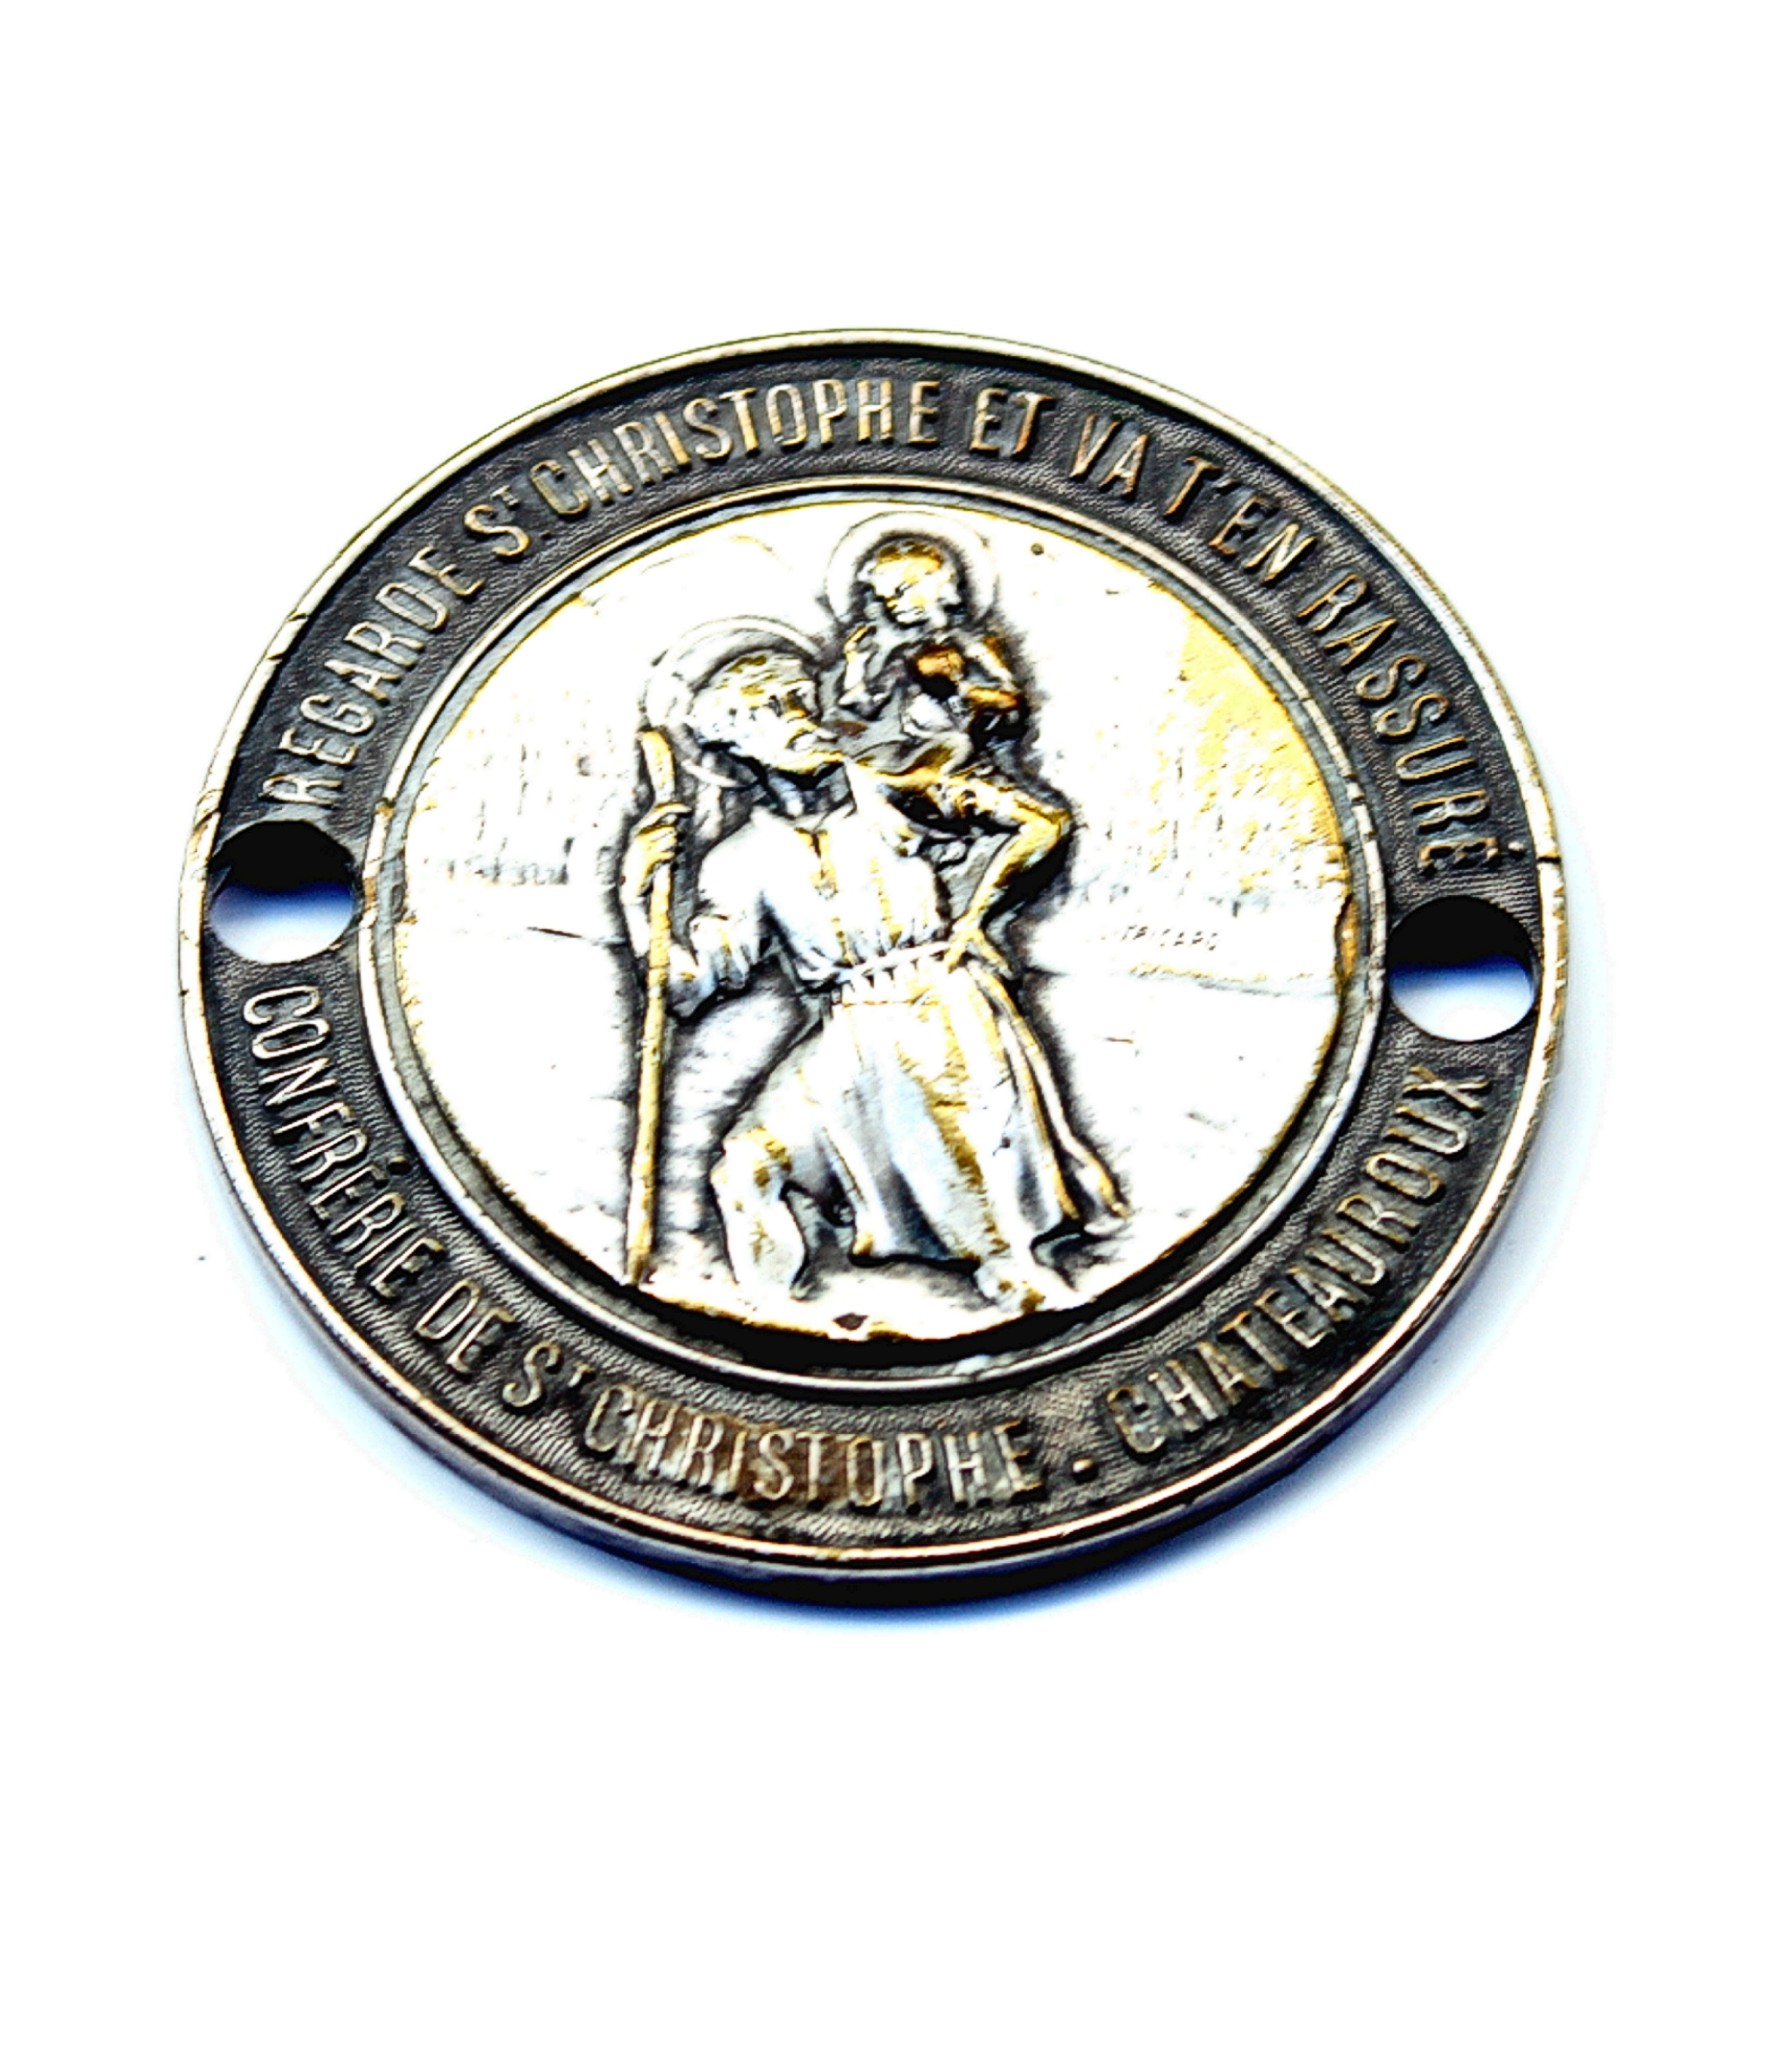 Brotherhood of St.Christopher dashboard badge by L.Tricard